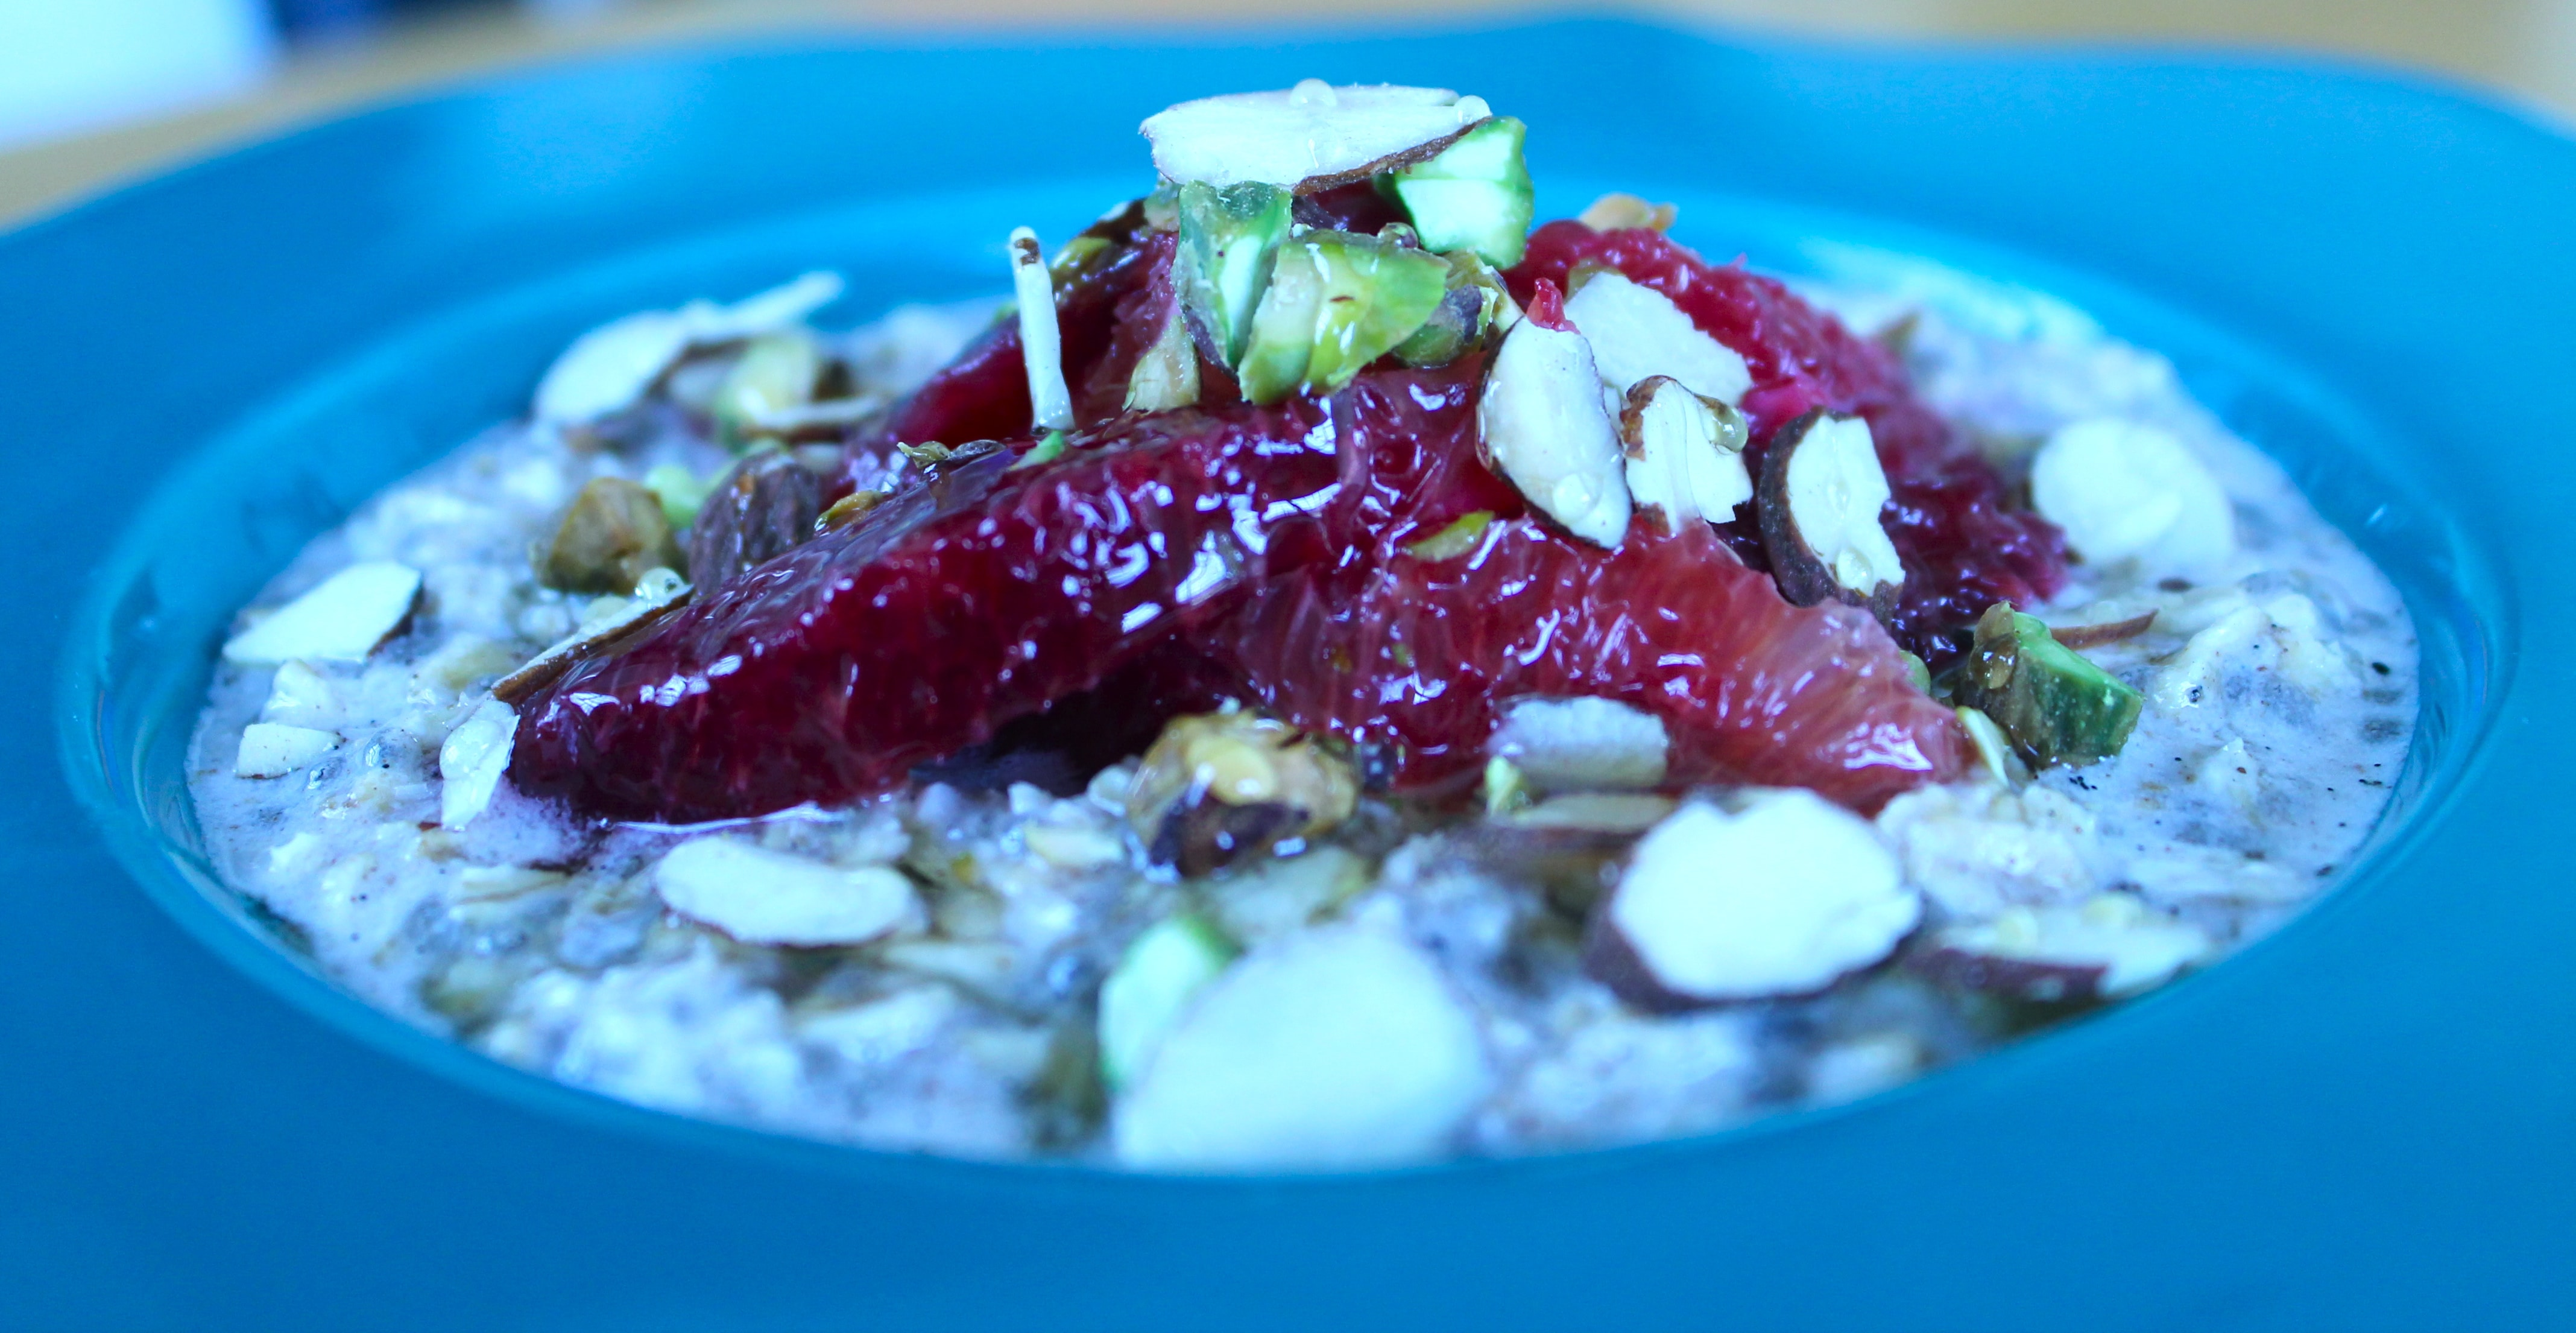 Vanilla Bean Chia Overnight Oats with Blood Oranges, Toasted Almonds and Pistachios